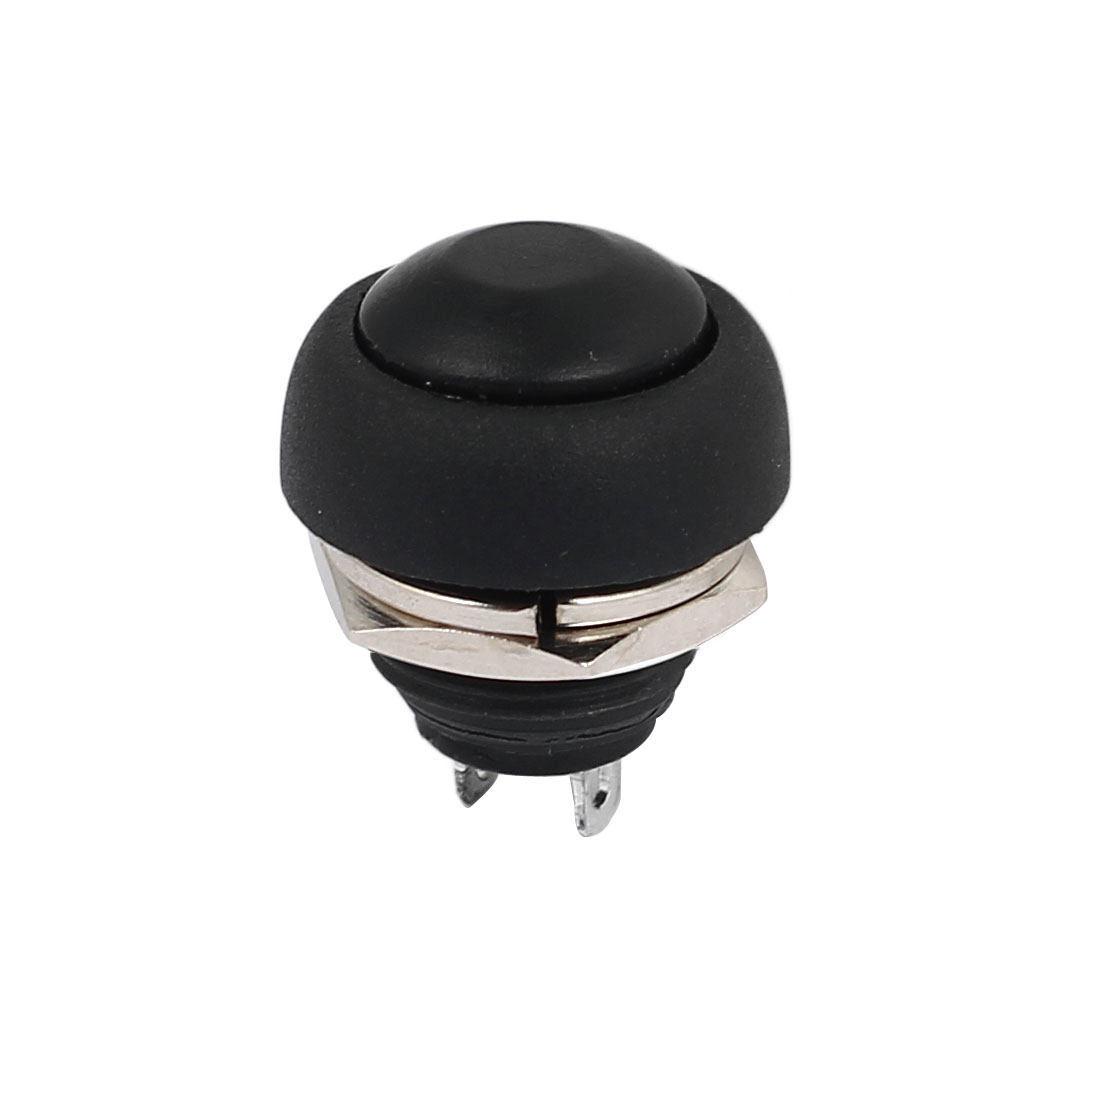 12mm Mini Waterproof Pushbutton Switch Momentary Type Black Plastic Head